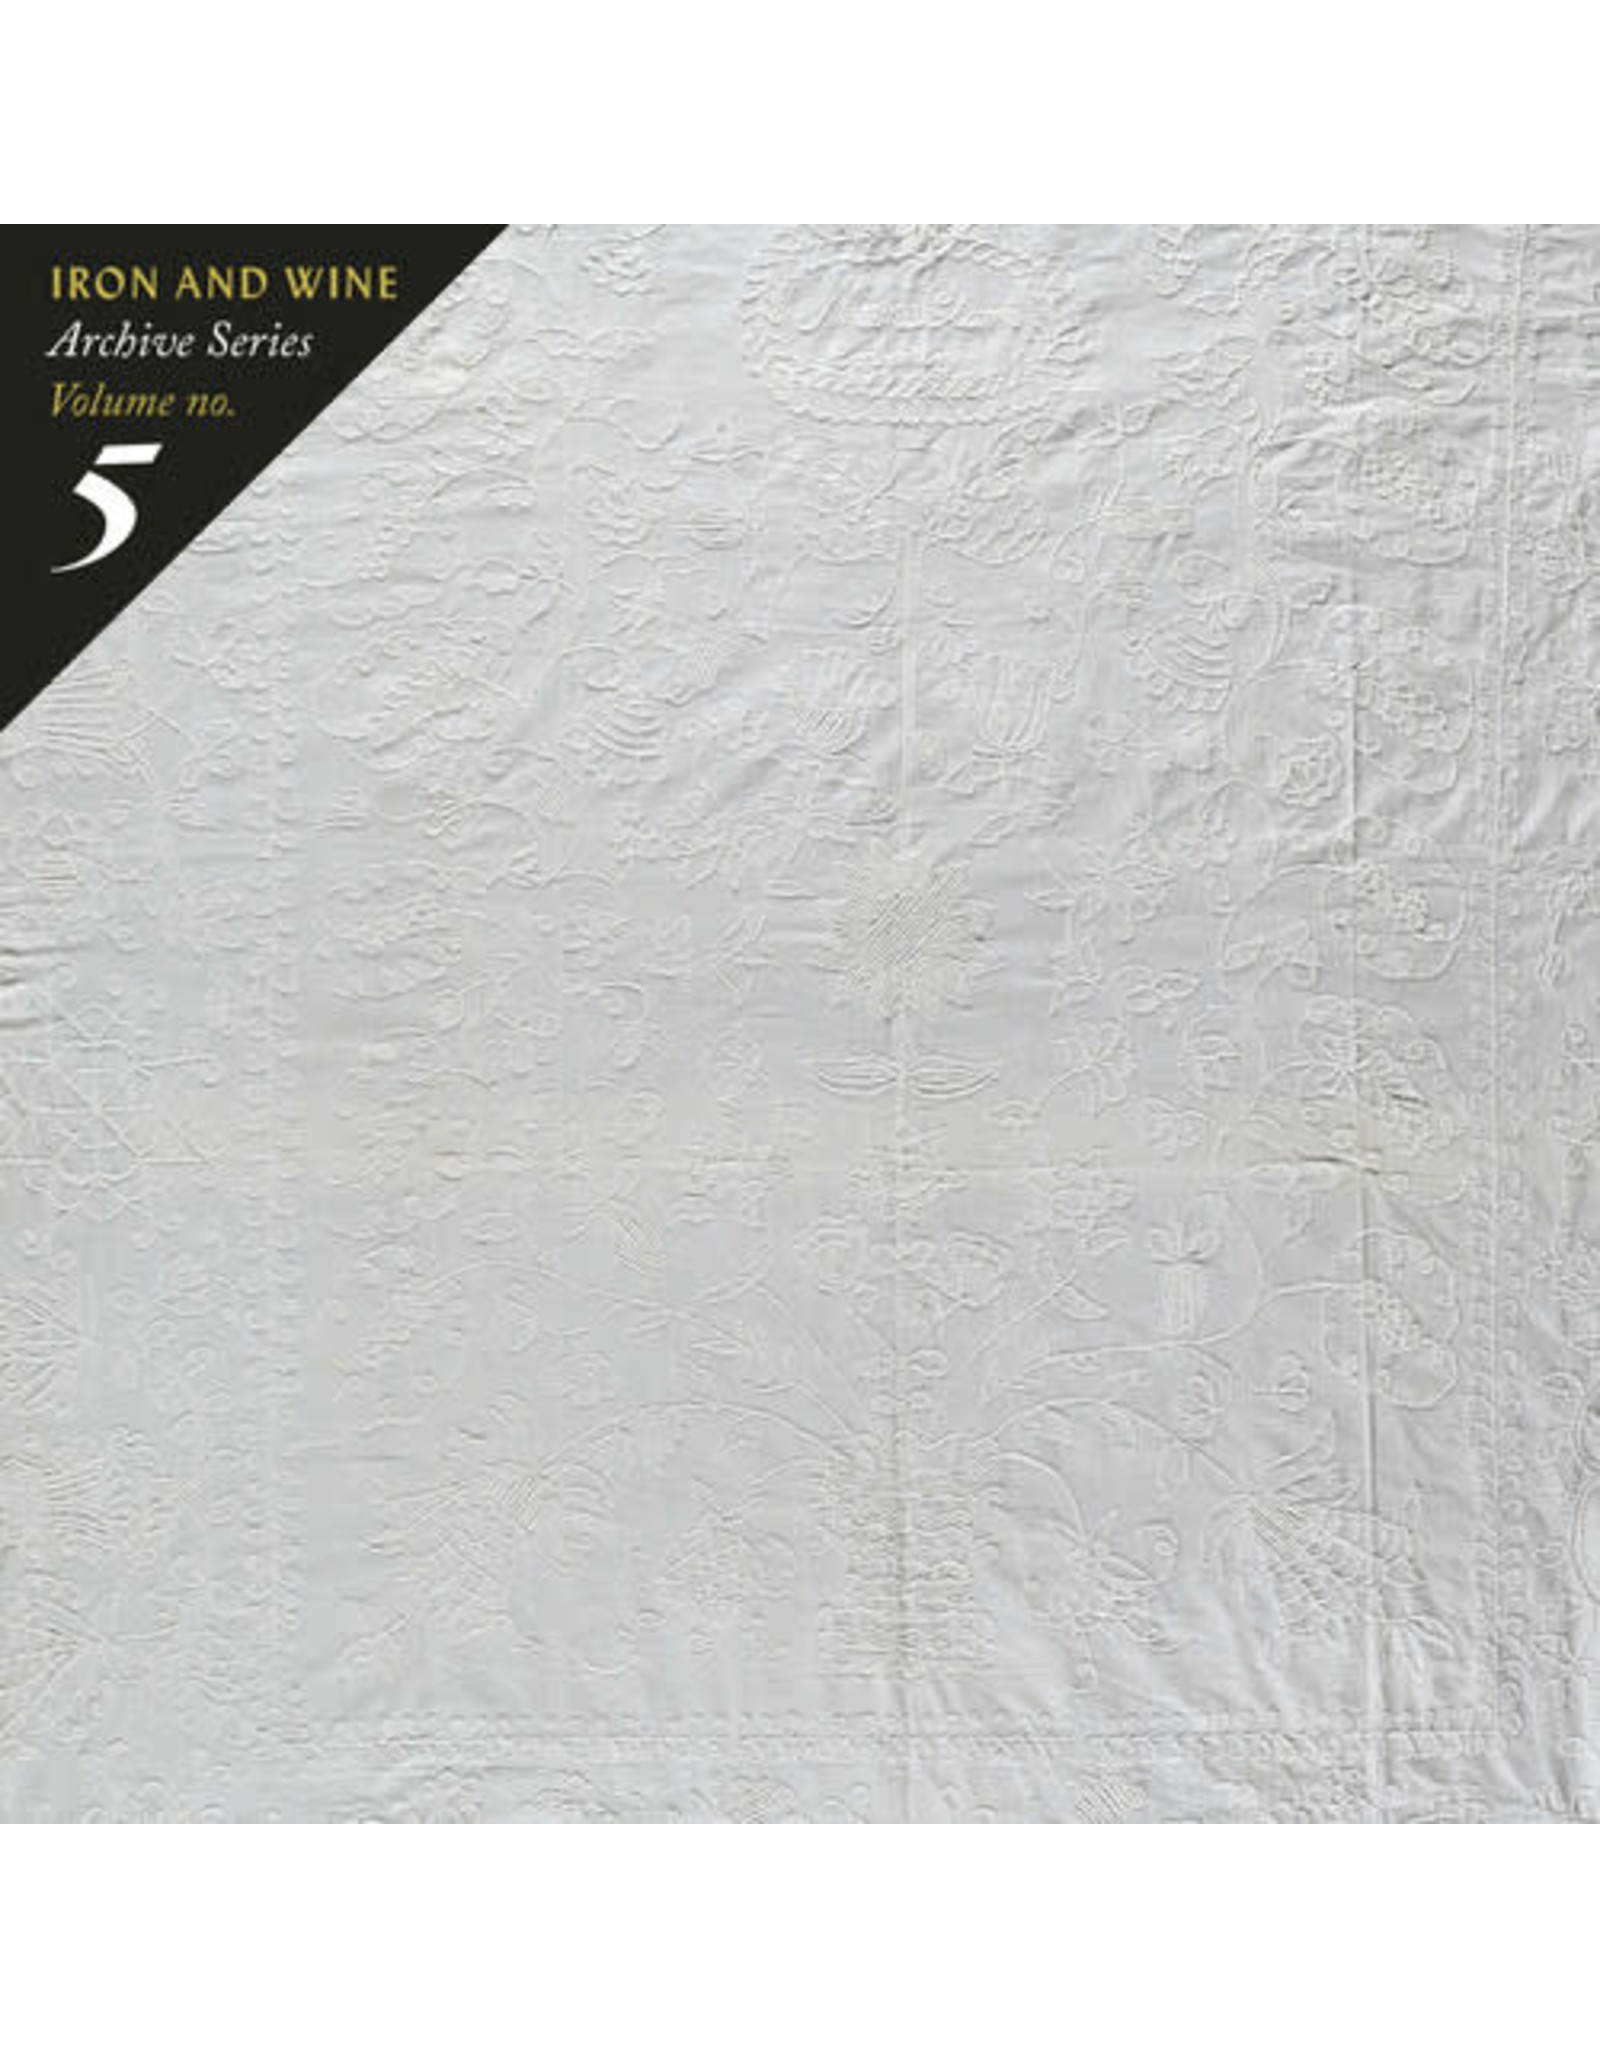 New Vinyl Iron & Wine - Archive Series Vol. 5: Tallahassee Recordings (Colored) LP